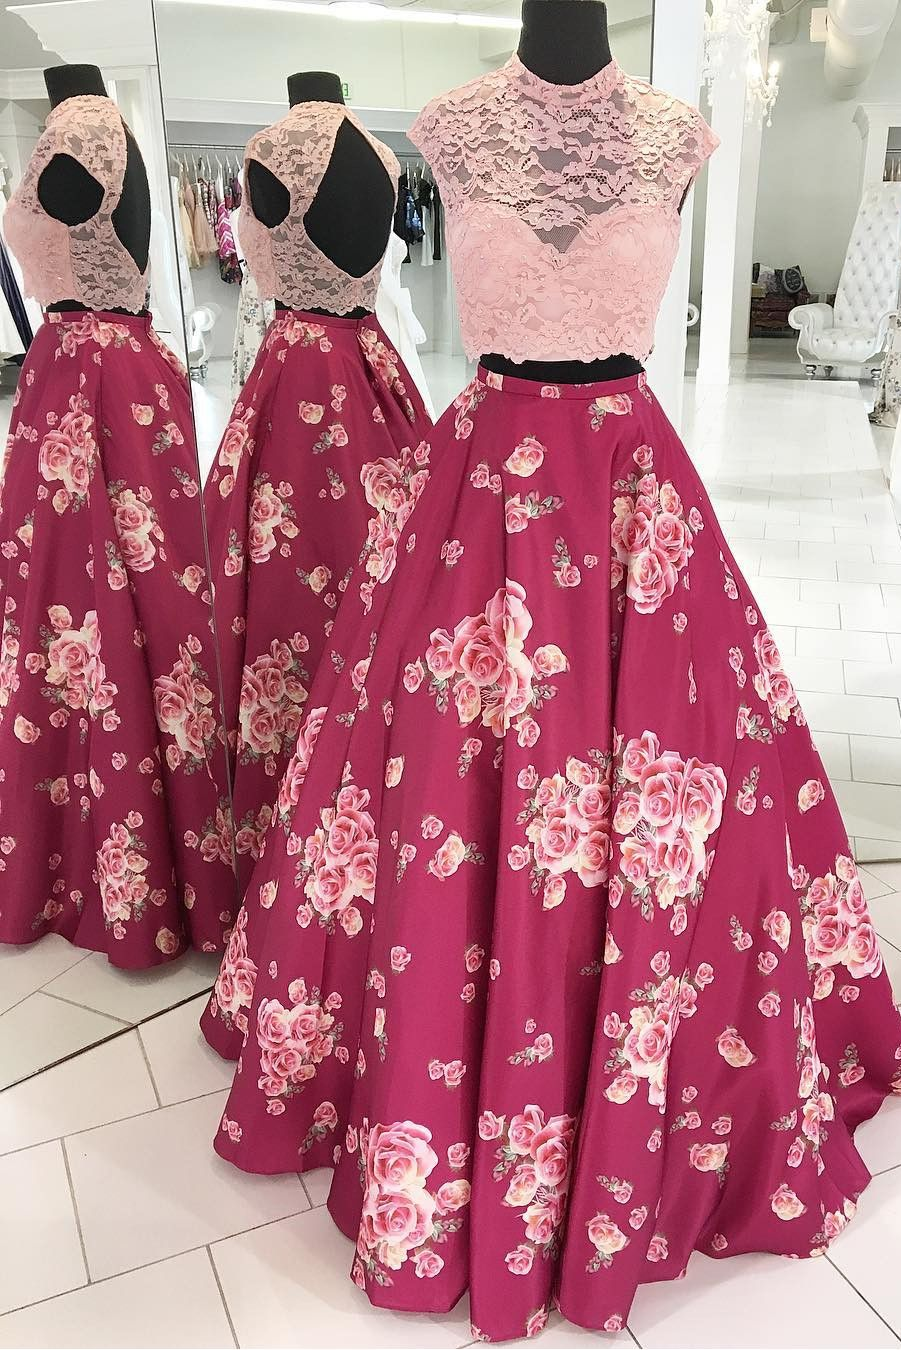 Floral Prom Dress, 2018 Two Piece Long Prom Dress, Pink Floral Long ...